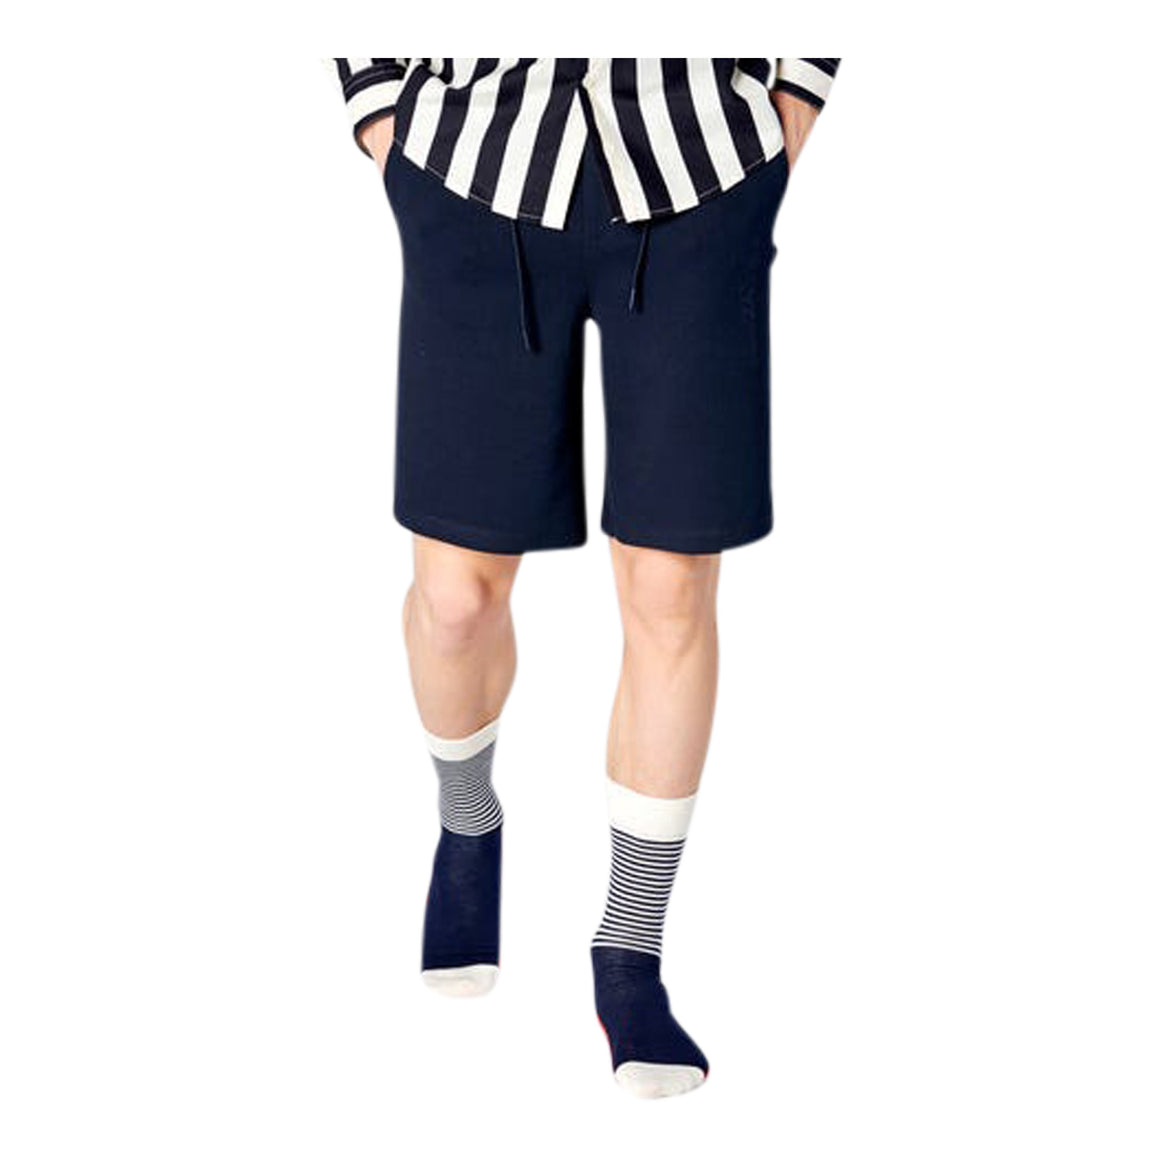 Half Stripe Socks for Men in Navy & Red